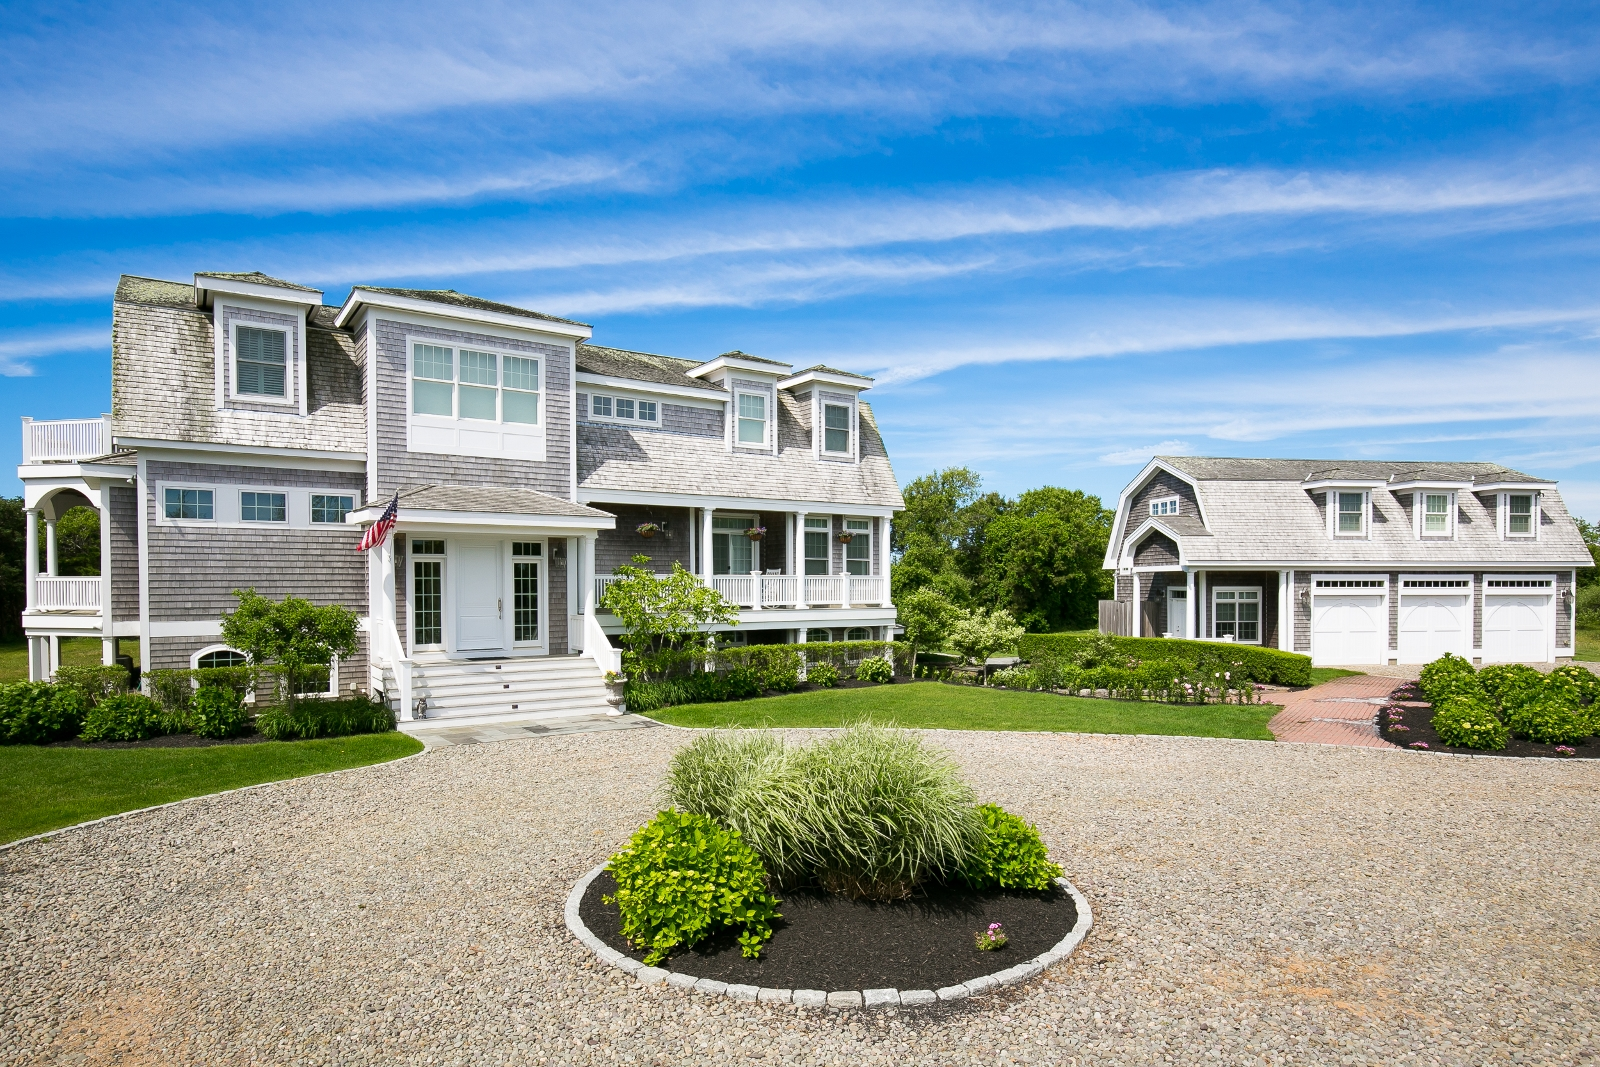 Casa Unifamiliar por un Venta en Beach Plum Meadows in Katama 15 Beach Plum Meadows Edgartown, Massachusetts 02539 Estados Unidos